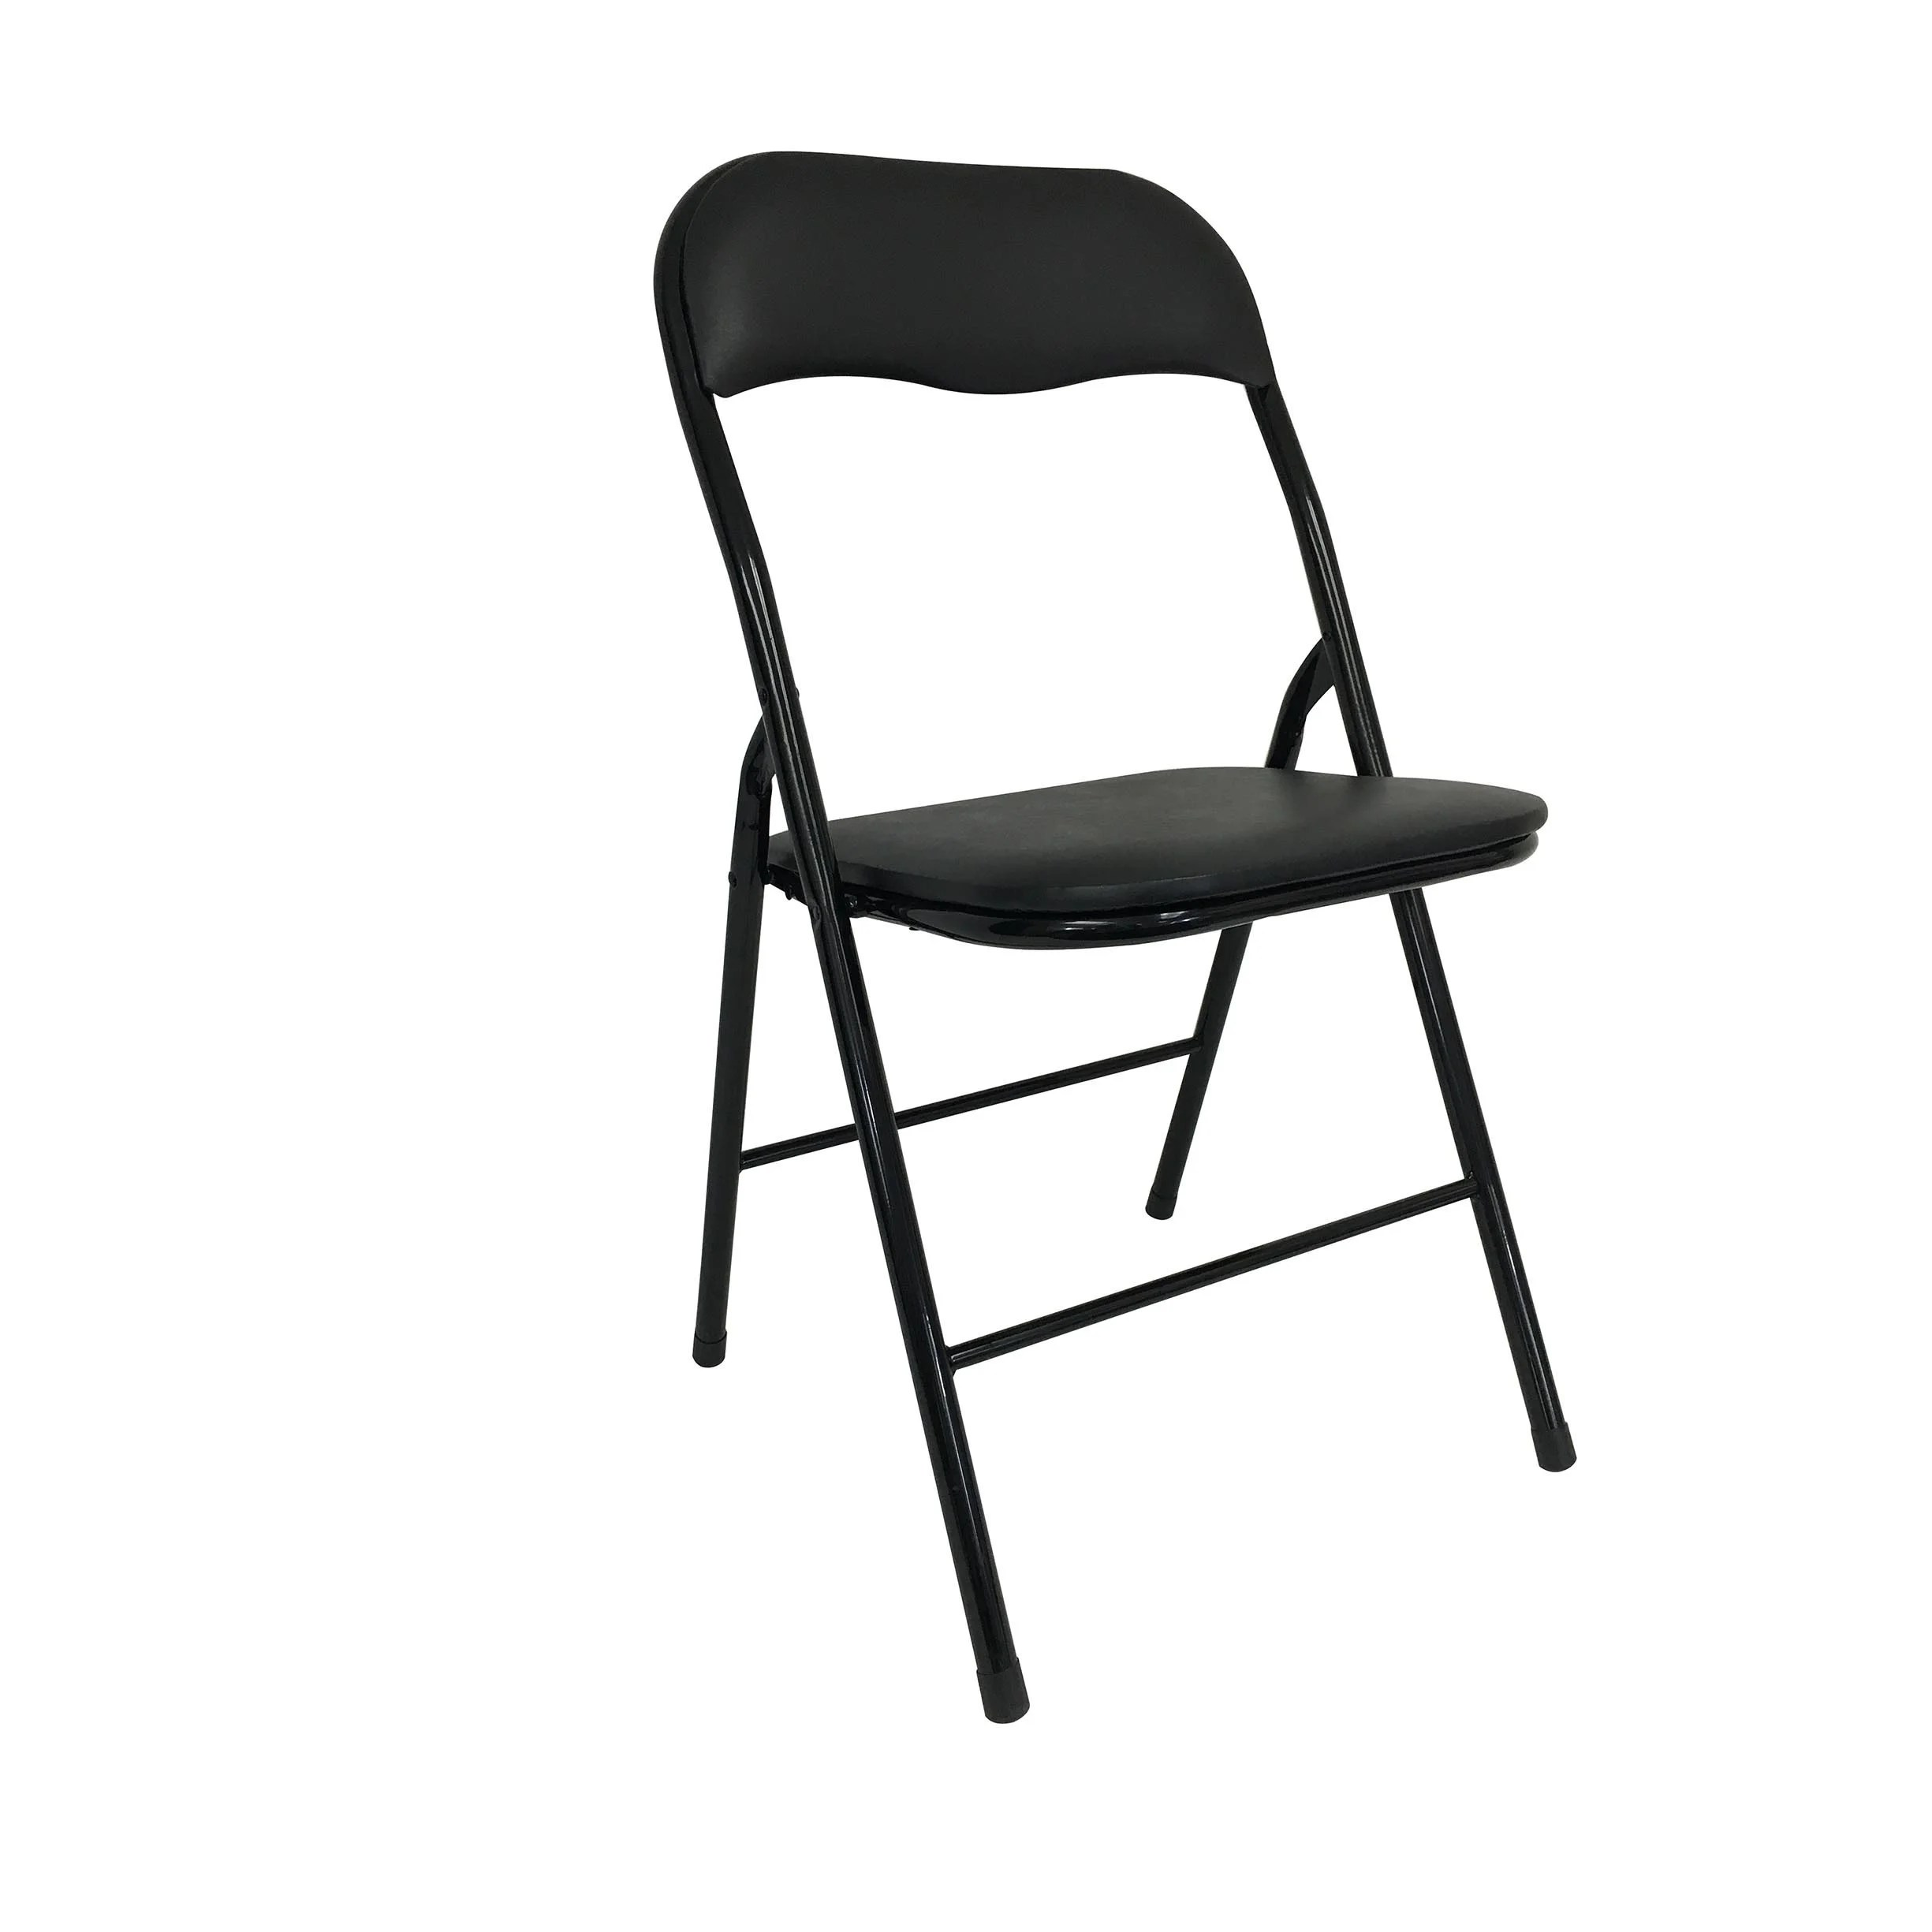 saucer chairs sam s club outdoor wicker swivel chair black cushioned folding amazing marquee padded